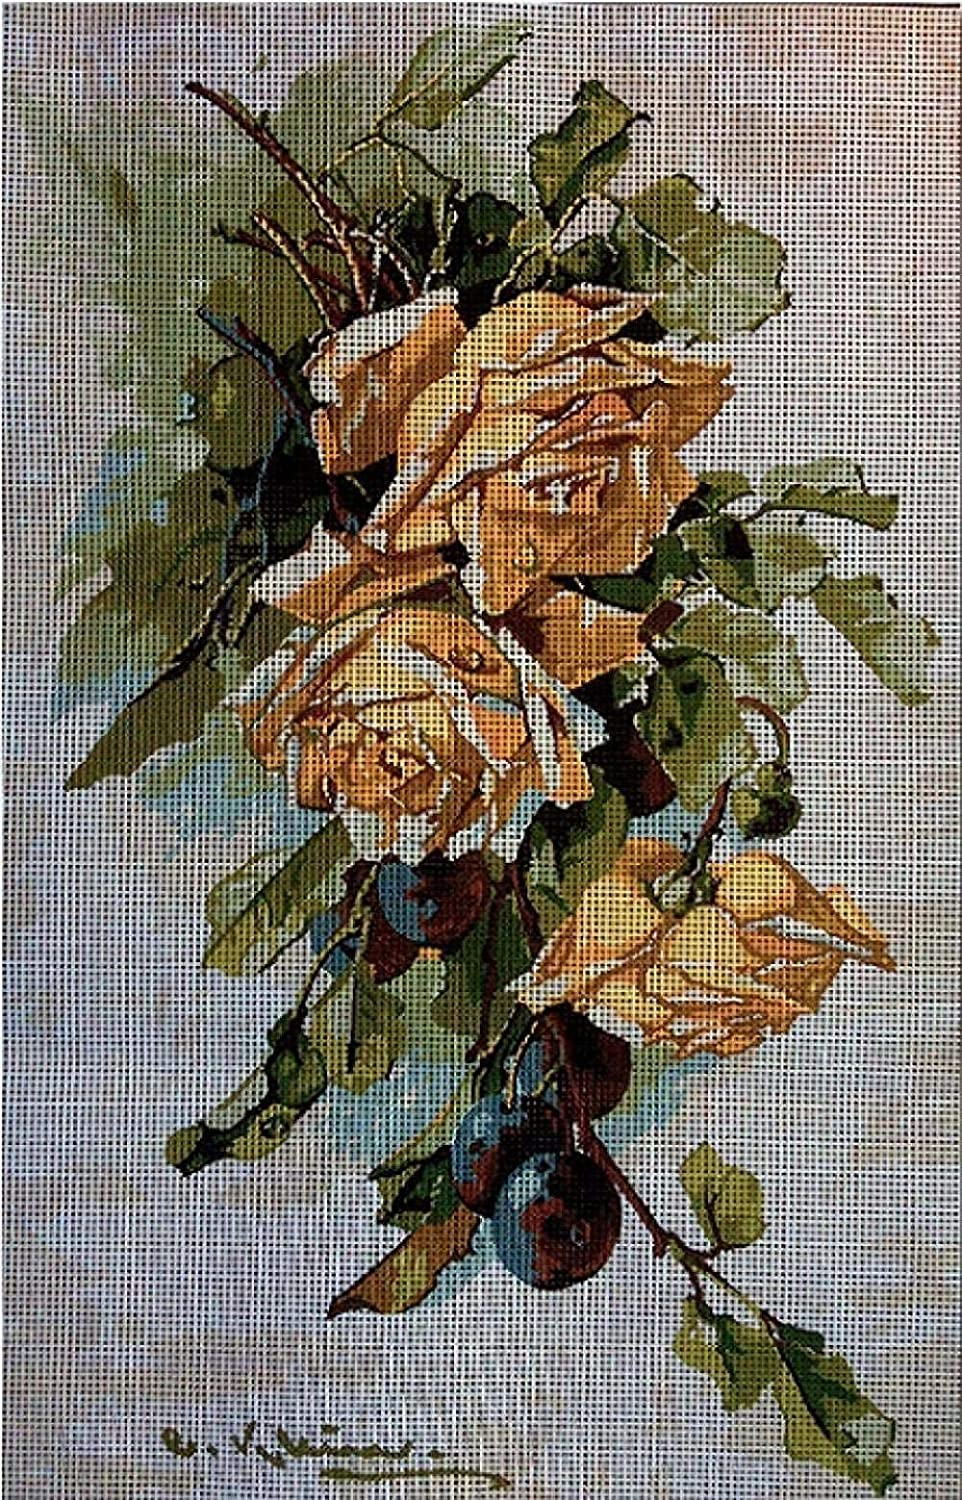 Cross Austin Mall Challenge the lowest price of Japan ☆ Stitch Beginner Kits Tapestry kit 2 Rose Yellow Embroidery